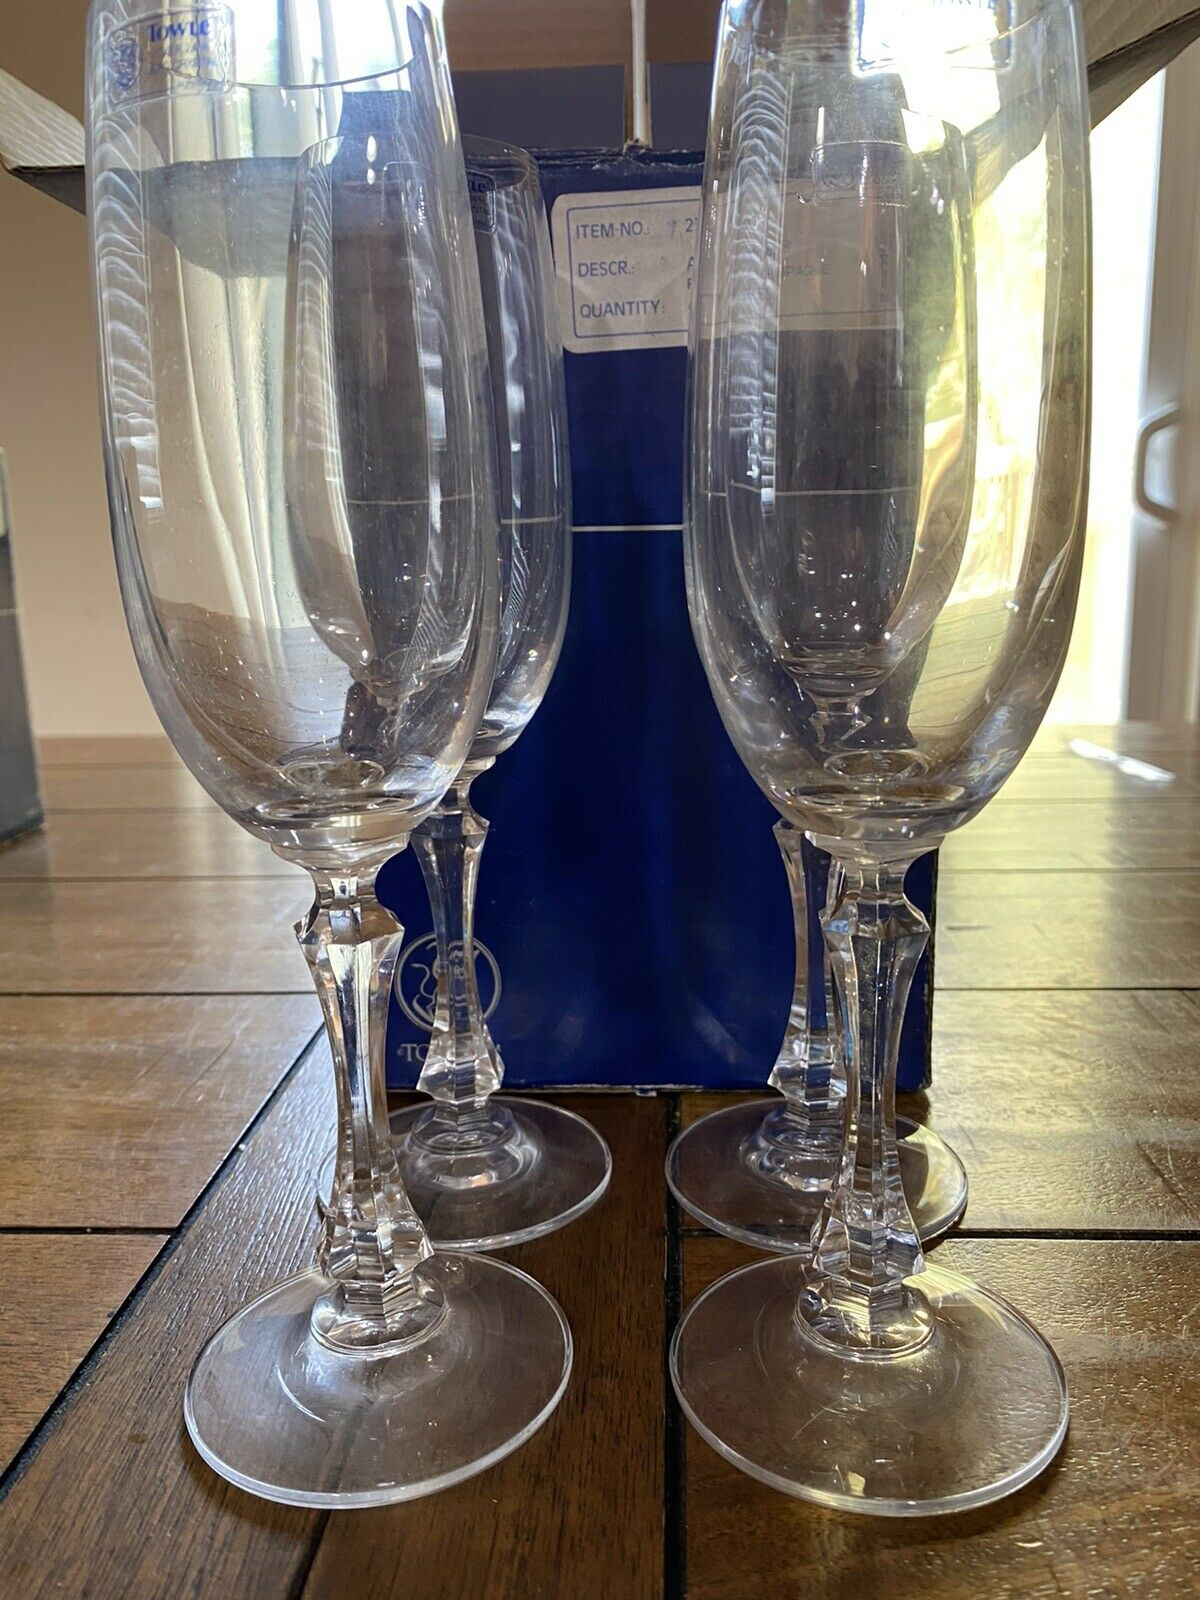 Lenox Sienna Champagne Flute Set Of 4 Lead Crystal Glasses Wine Bar Wow For Sale Online Ebay